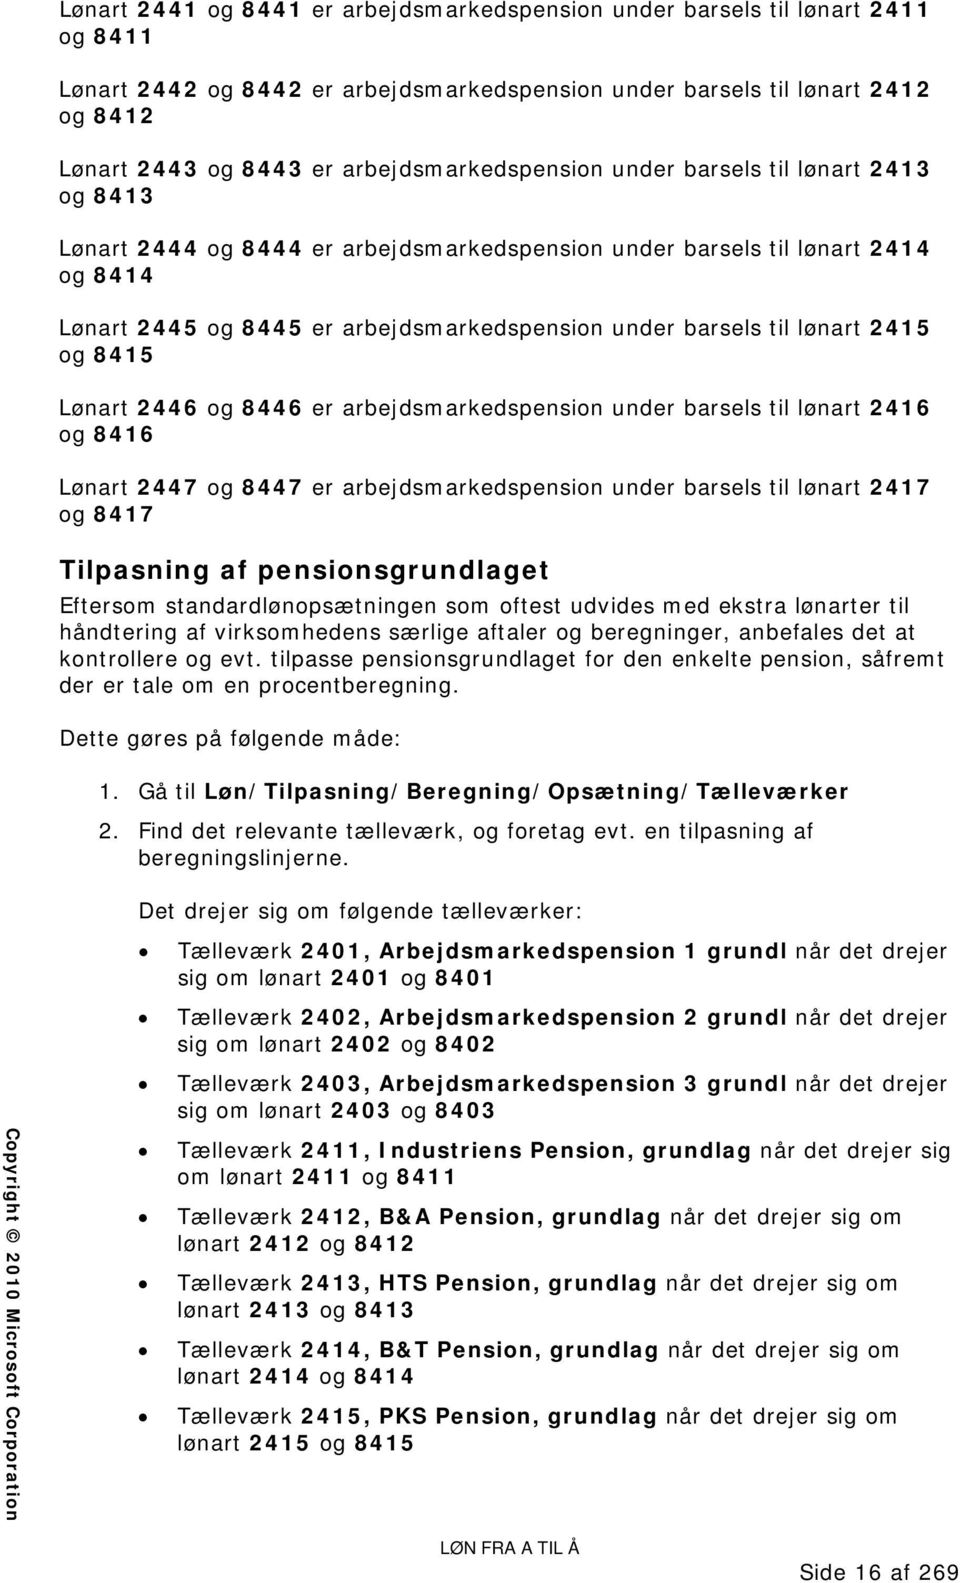 barsels til lønart 2415 og 8415 Lønart 2446 og 8446 er arbejdsmarkedspension under barsels til lønart 2416 og 8416 Lønart 2447 og 8447 er arbejdsmarkedspension under barsels til lønart 2417 og 8417